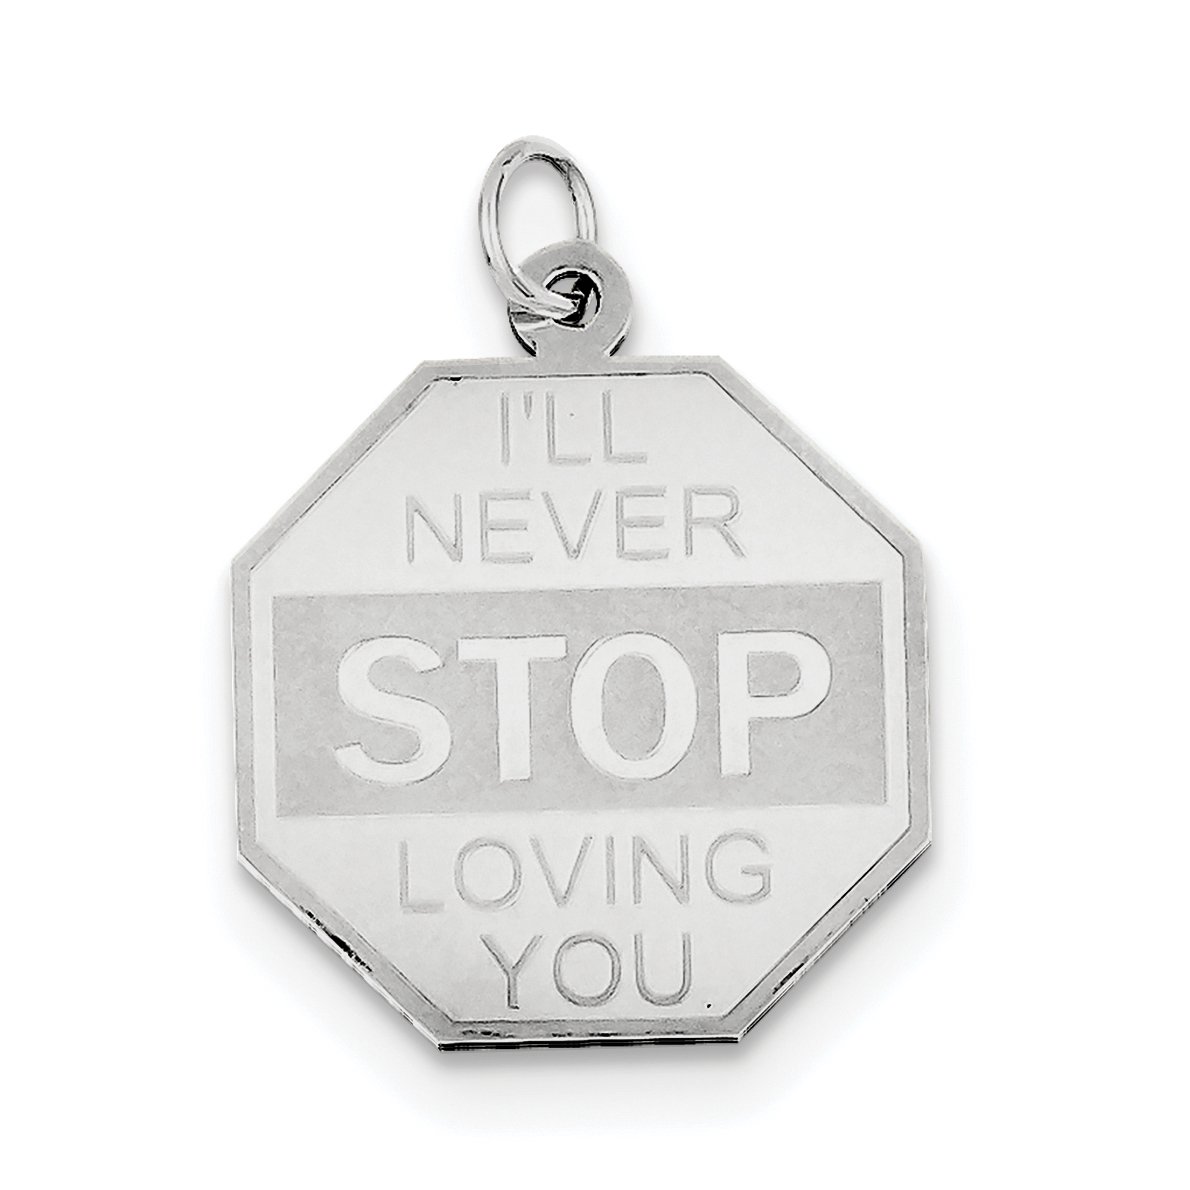 Sterling Silver Rhodium-plated I'll Never stop loving you Charm QC368 (28mm x 21mm) - image 2 of 2